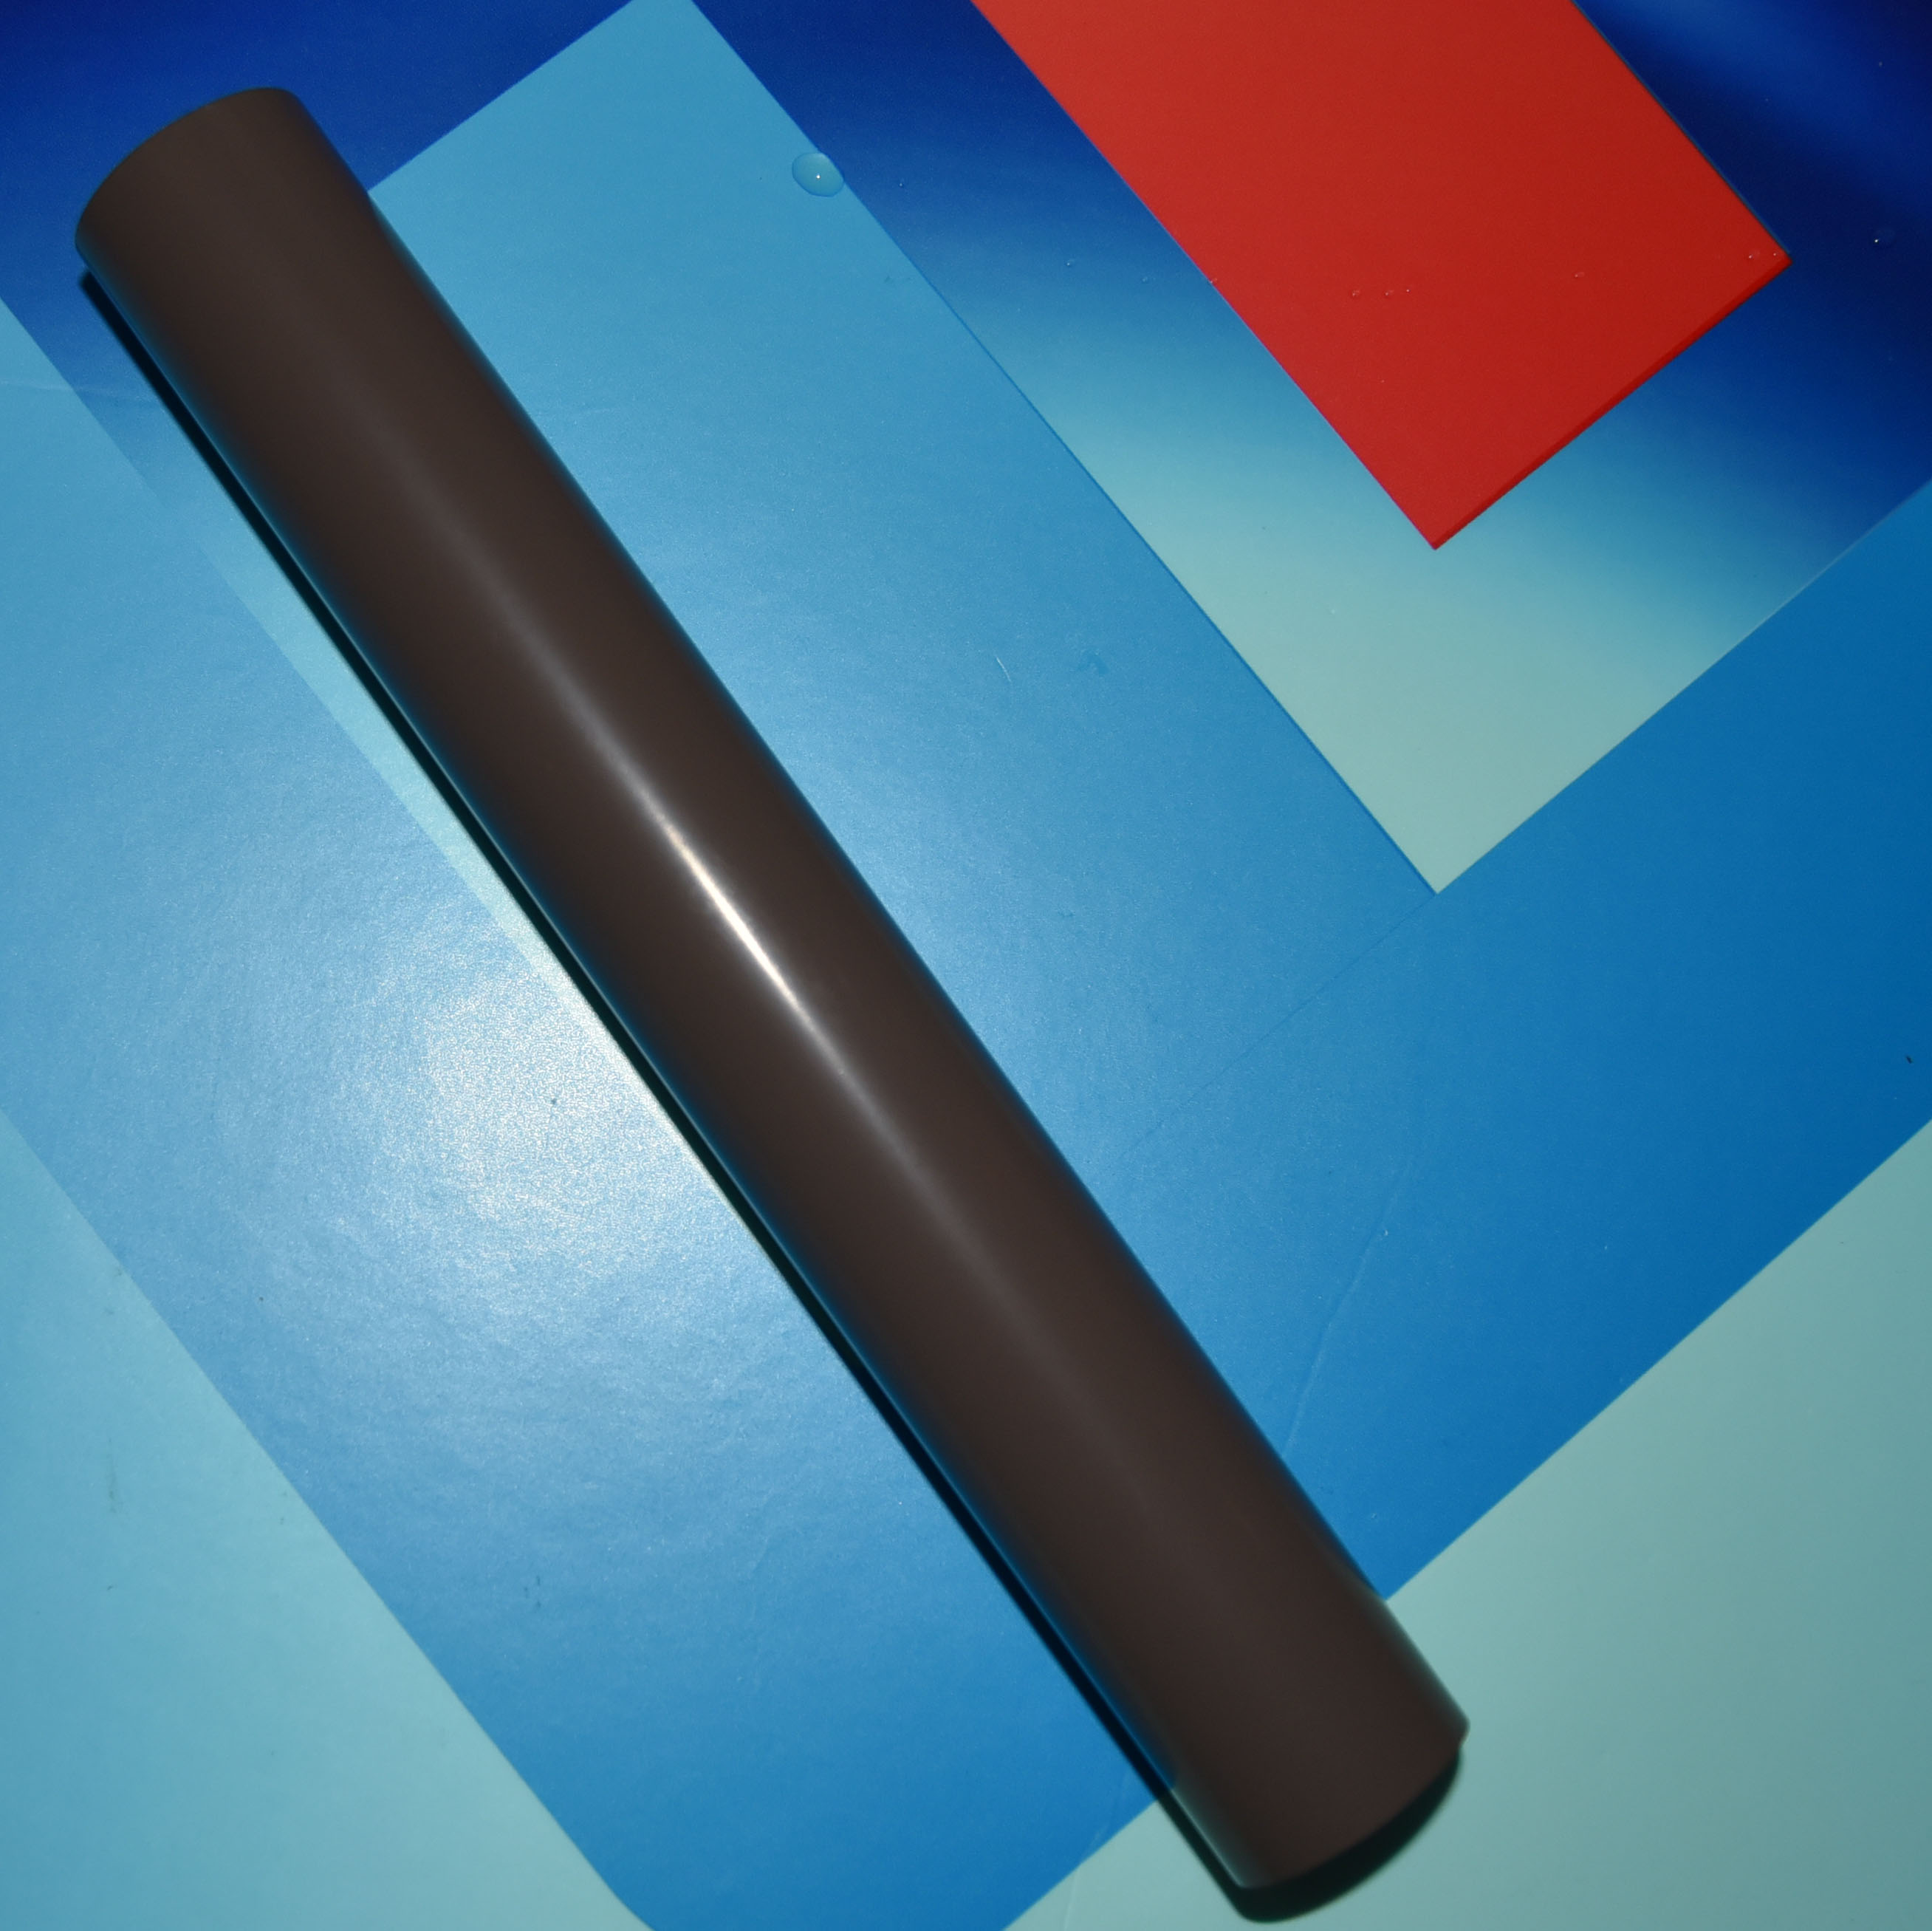 Brother Fuser Film Sleeve for Brother HL-5440 MFC-8510 DCP-8110